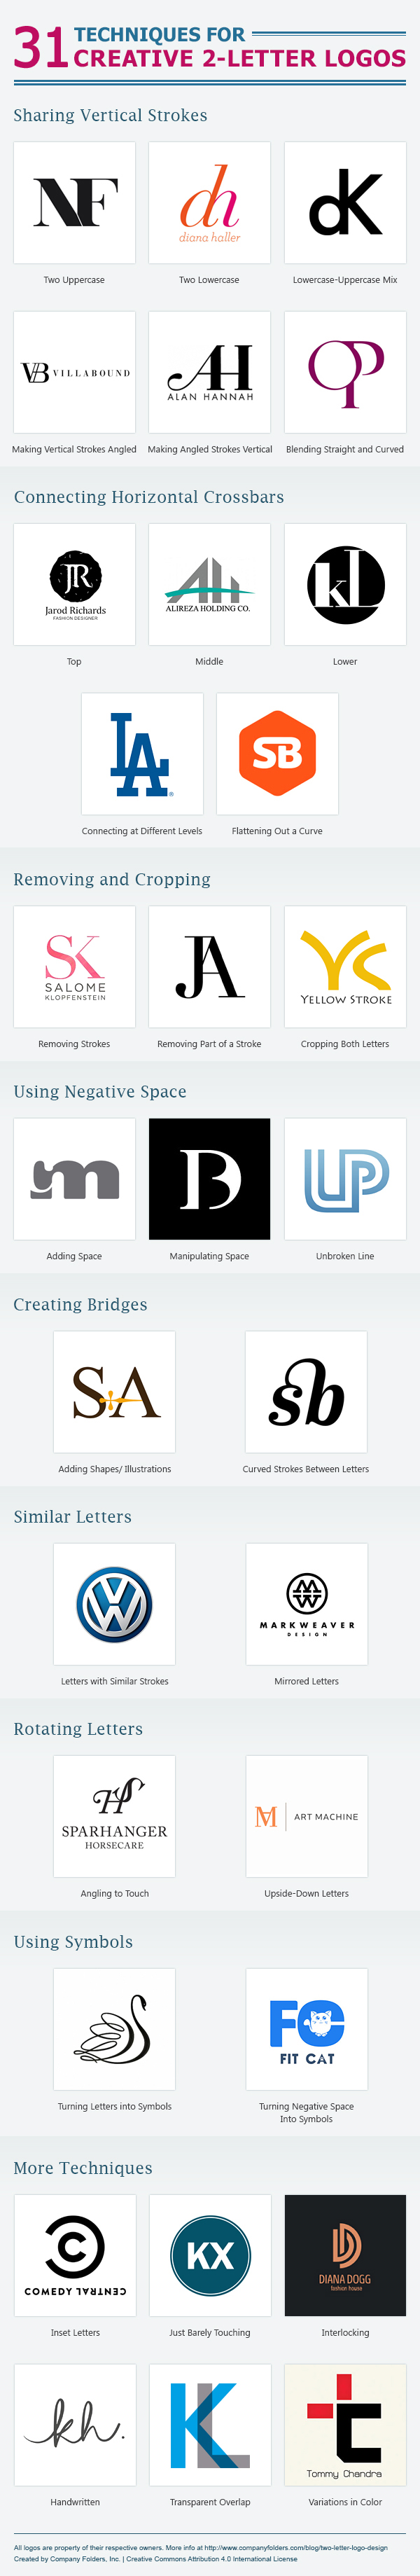 Got a 2 Letter Business Name 31 Ways to Make Your Logo More